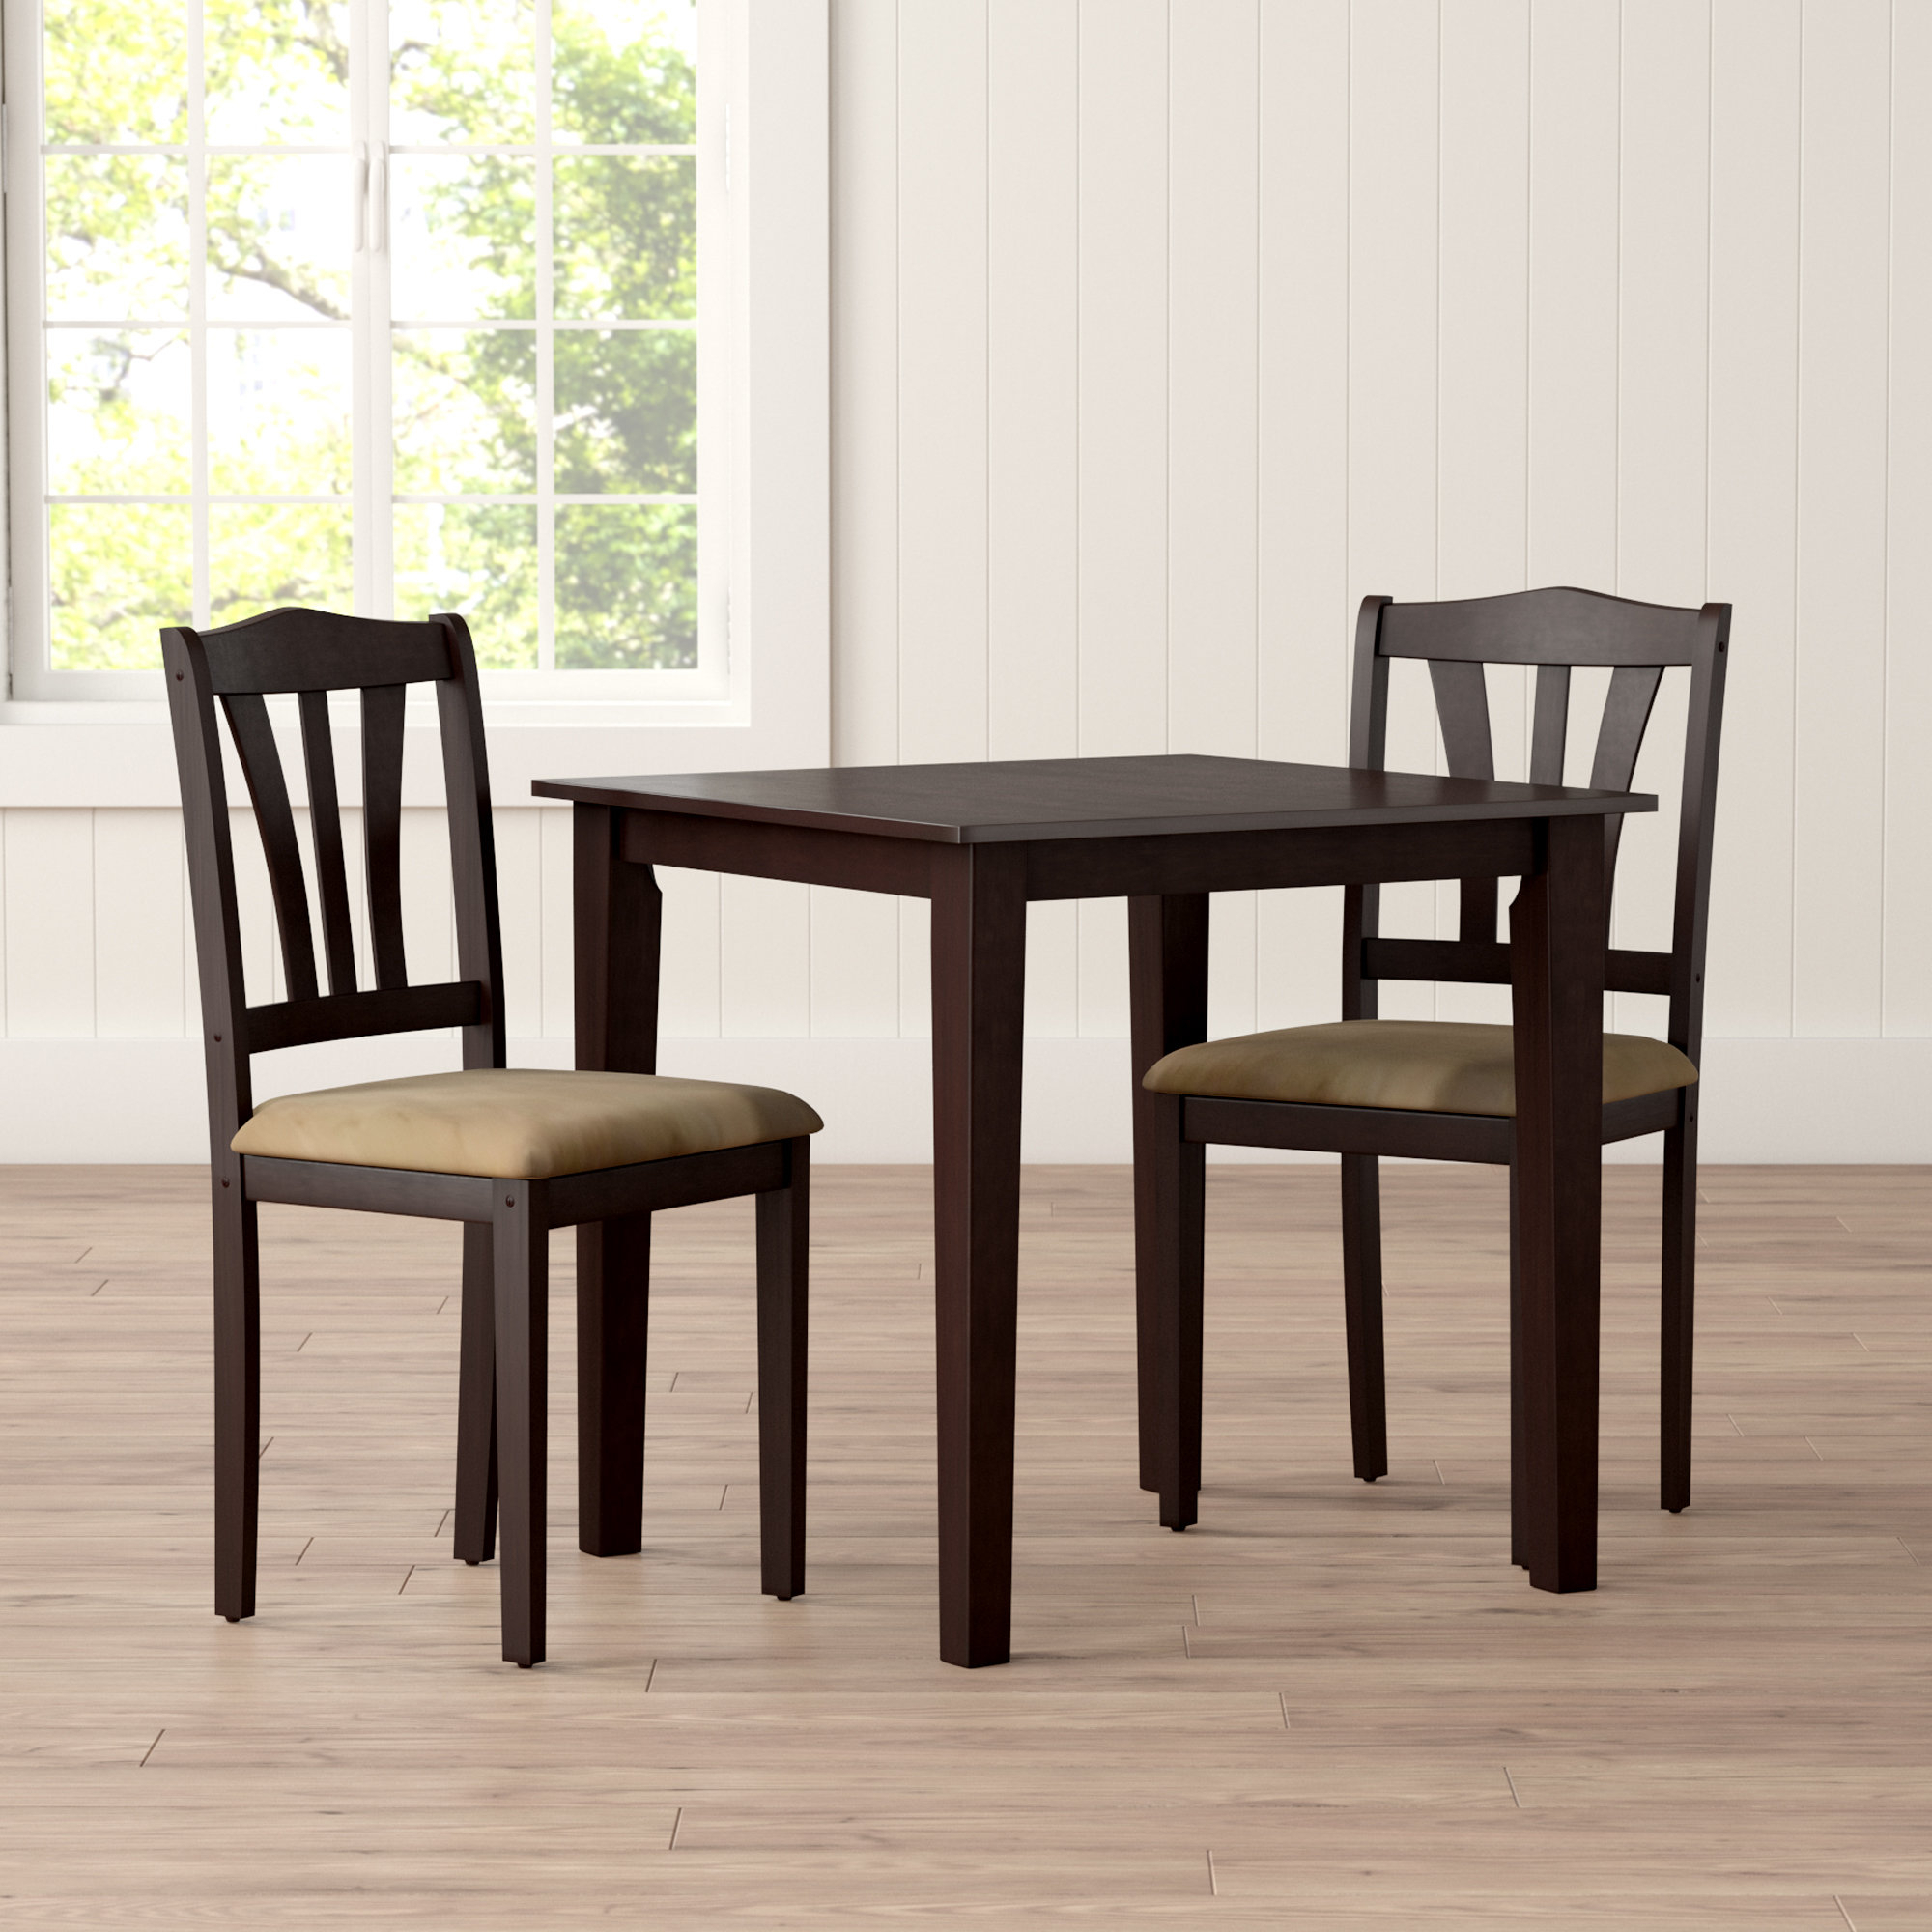 West Hill Family Table 3 Piece Dining Sets With Regard To Recent 3 Piece Kitchen & Dining Room Sets You'll Love In (View 3 of 20)